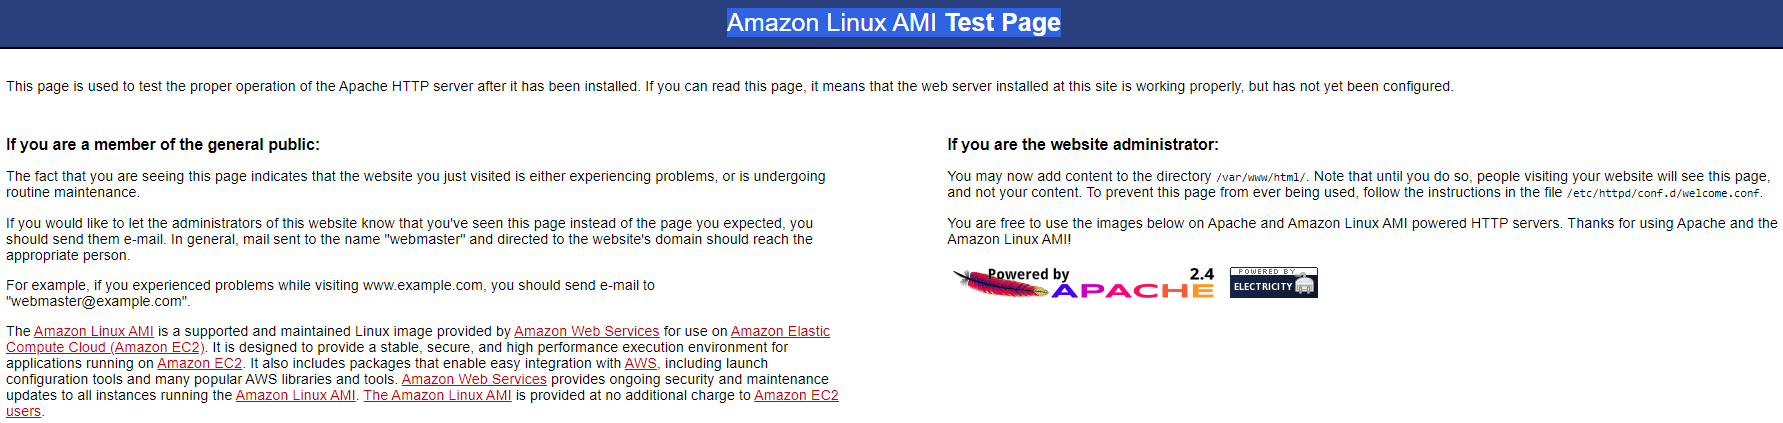 amazon linux AMI Test Page